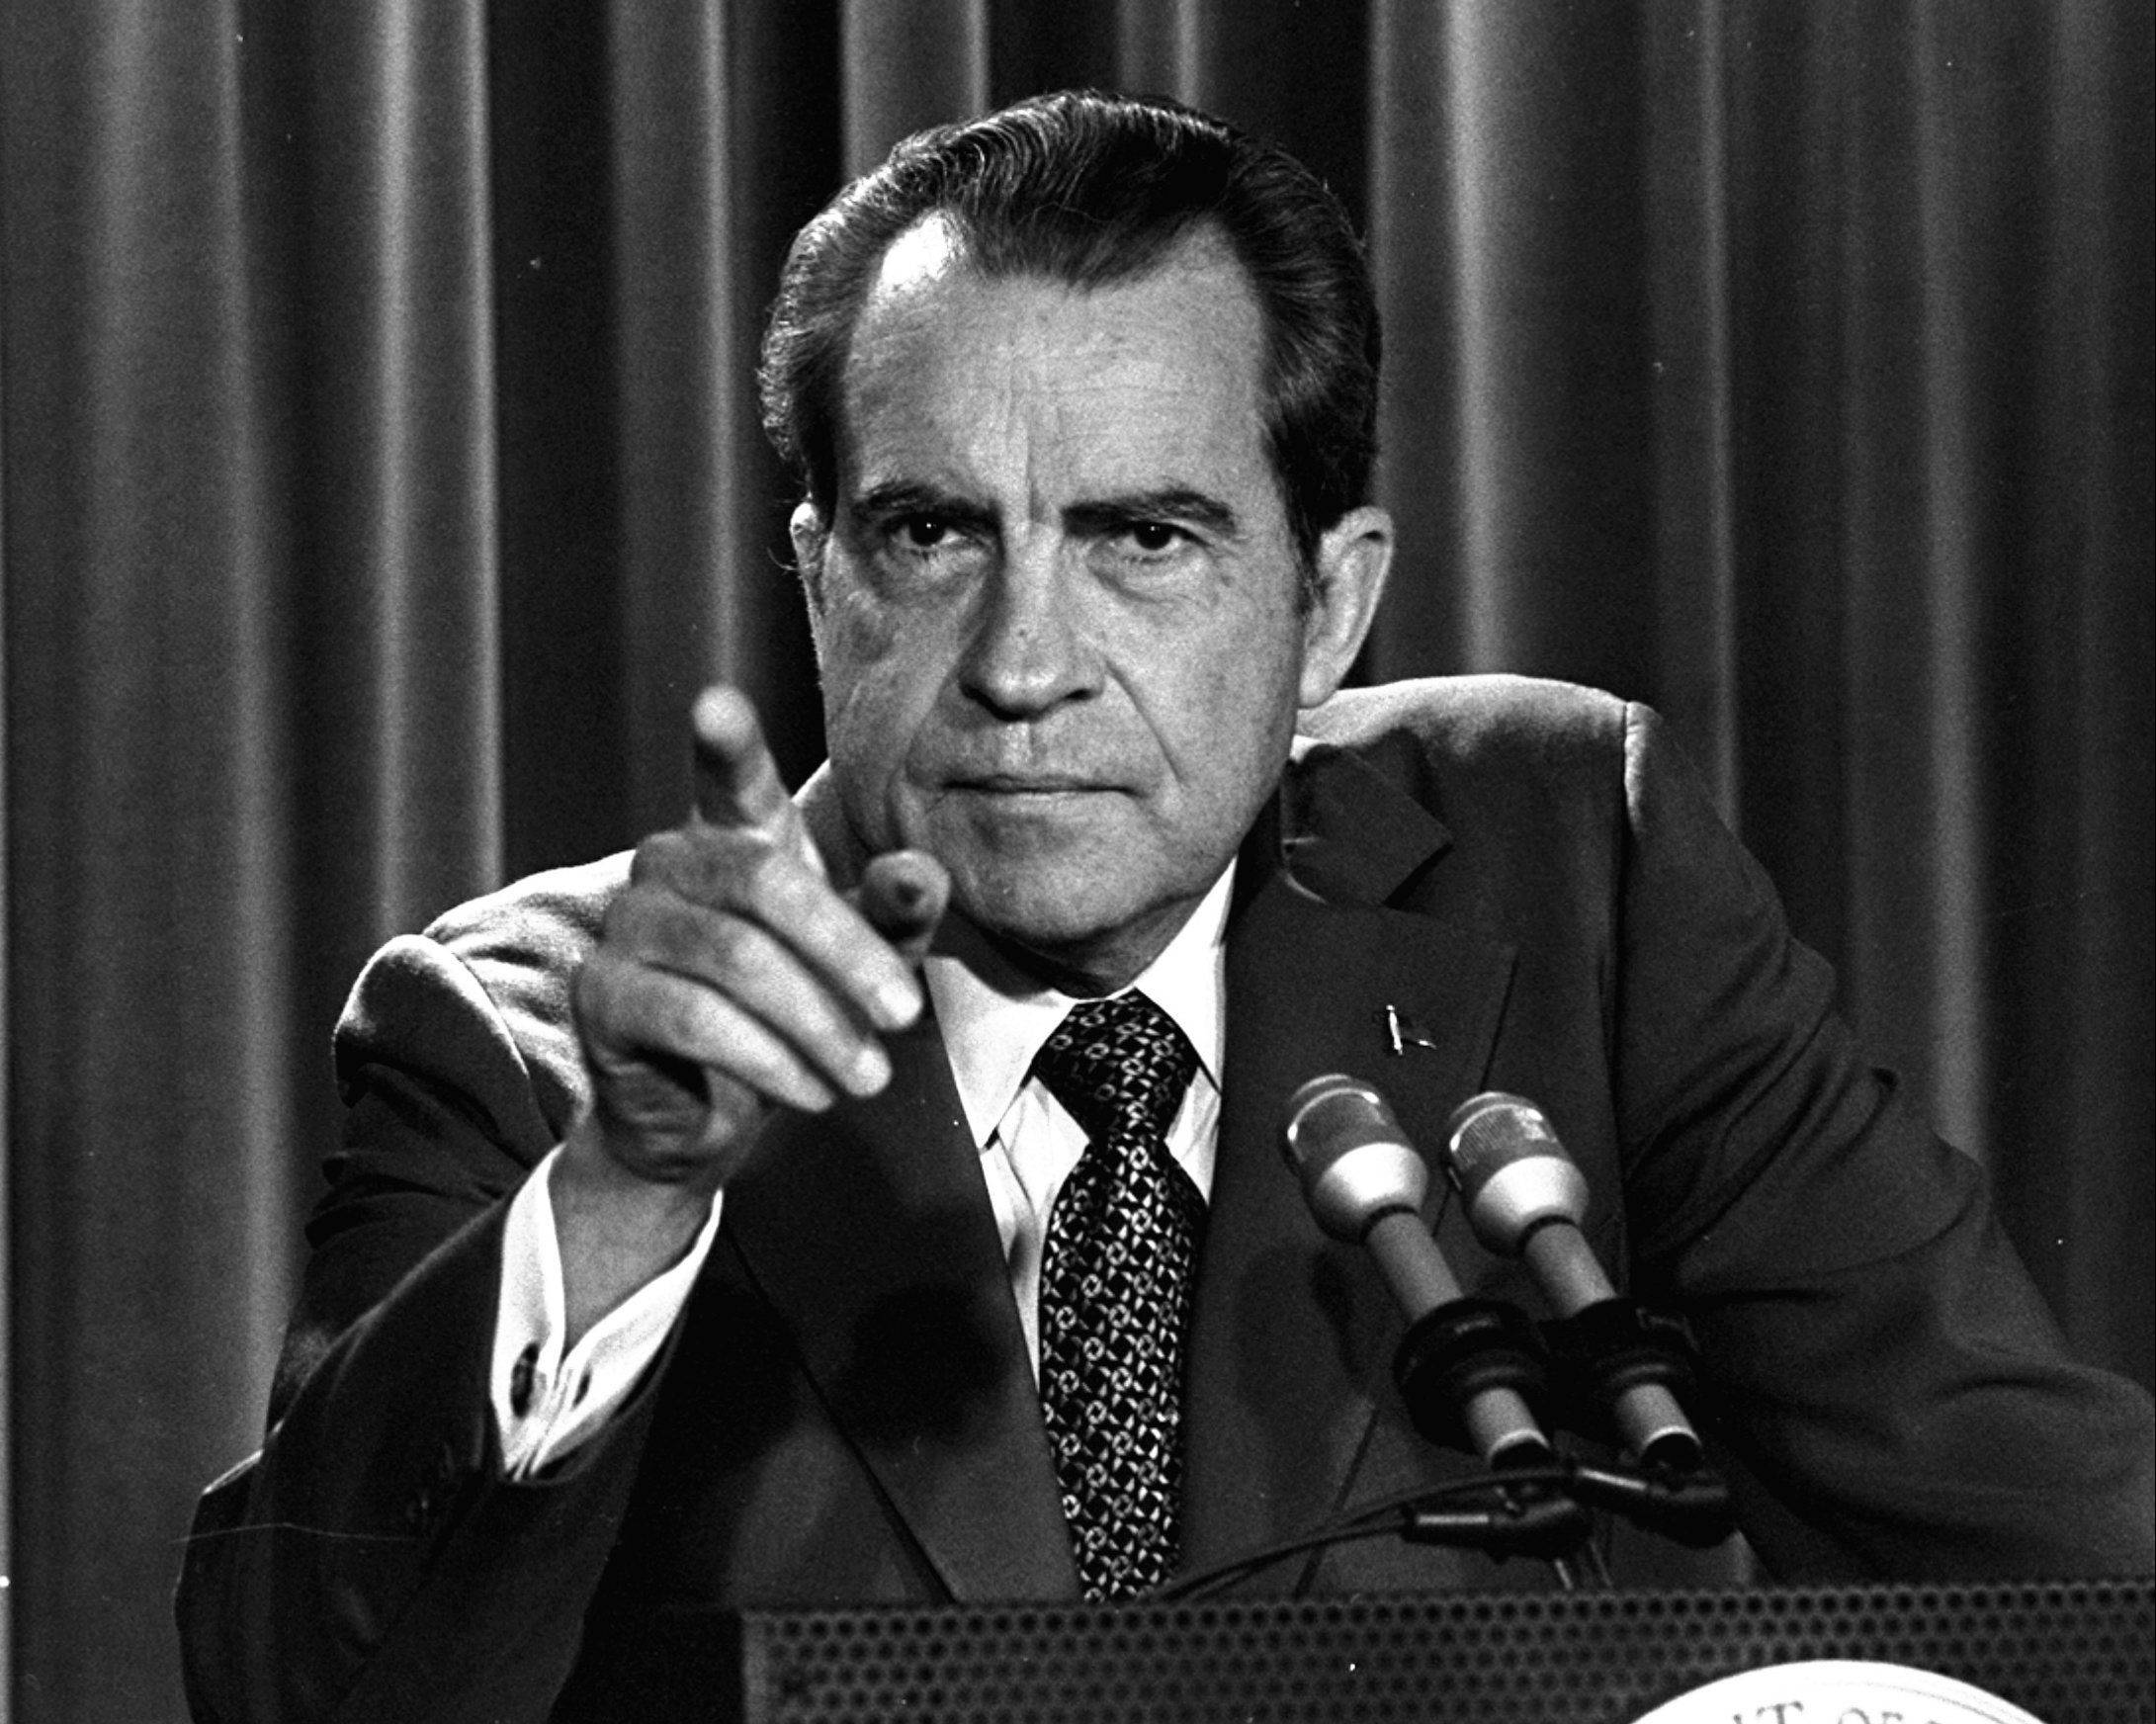 In this March 15, 1973, file photo President Nixon tells a White House news conference that he will not allow his legal counsel, John Dean, to testify on Capitol Hill in the Watergate investigation and challenged the Senate to test him in the Supreme Court.